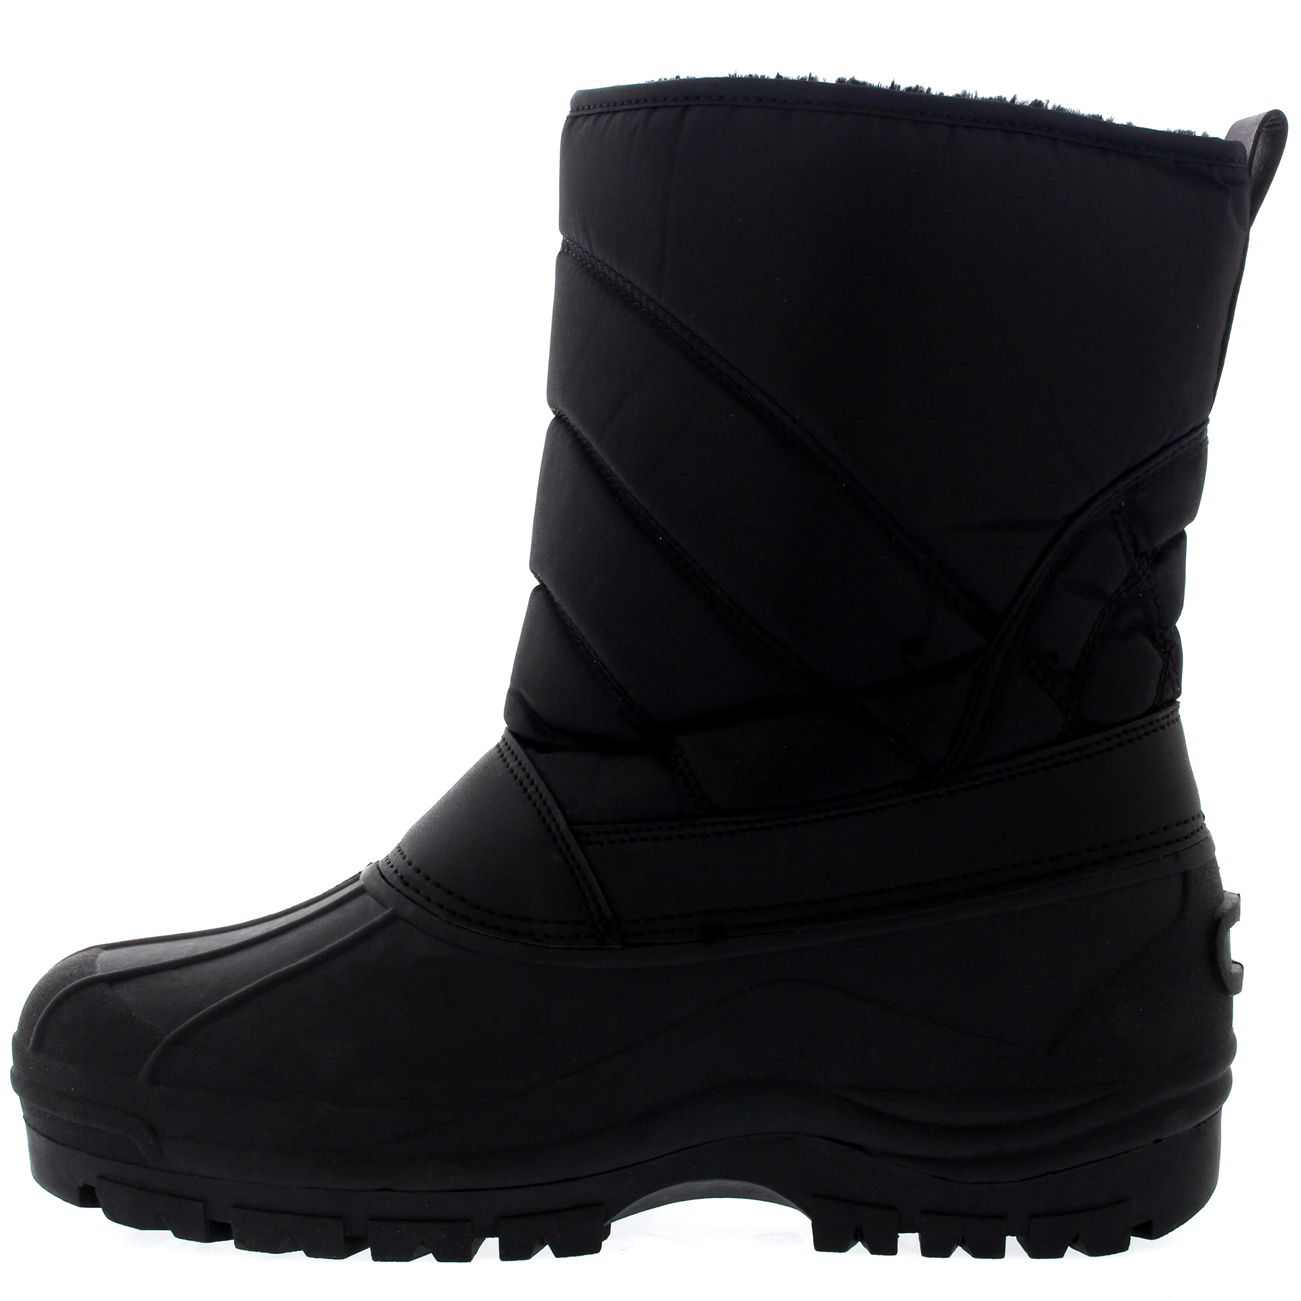 Muck Boot Alternative - Boot Hto